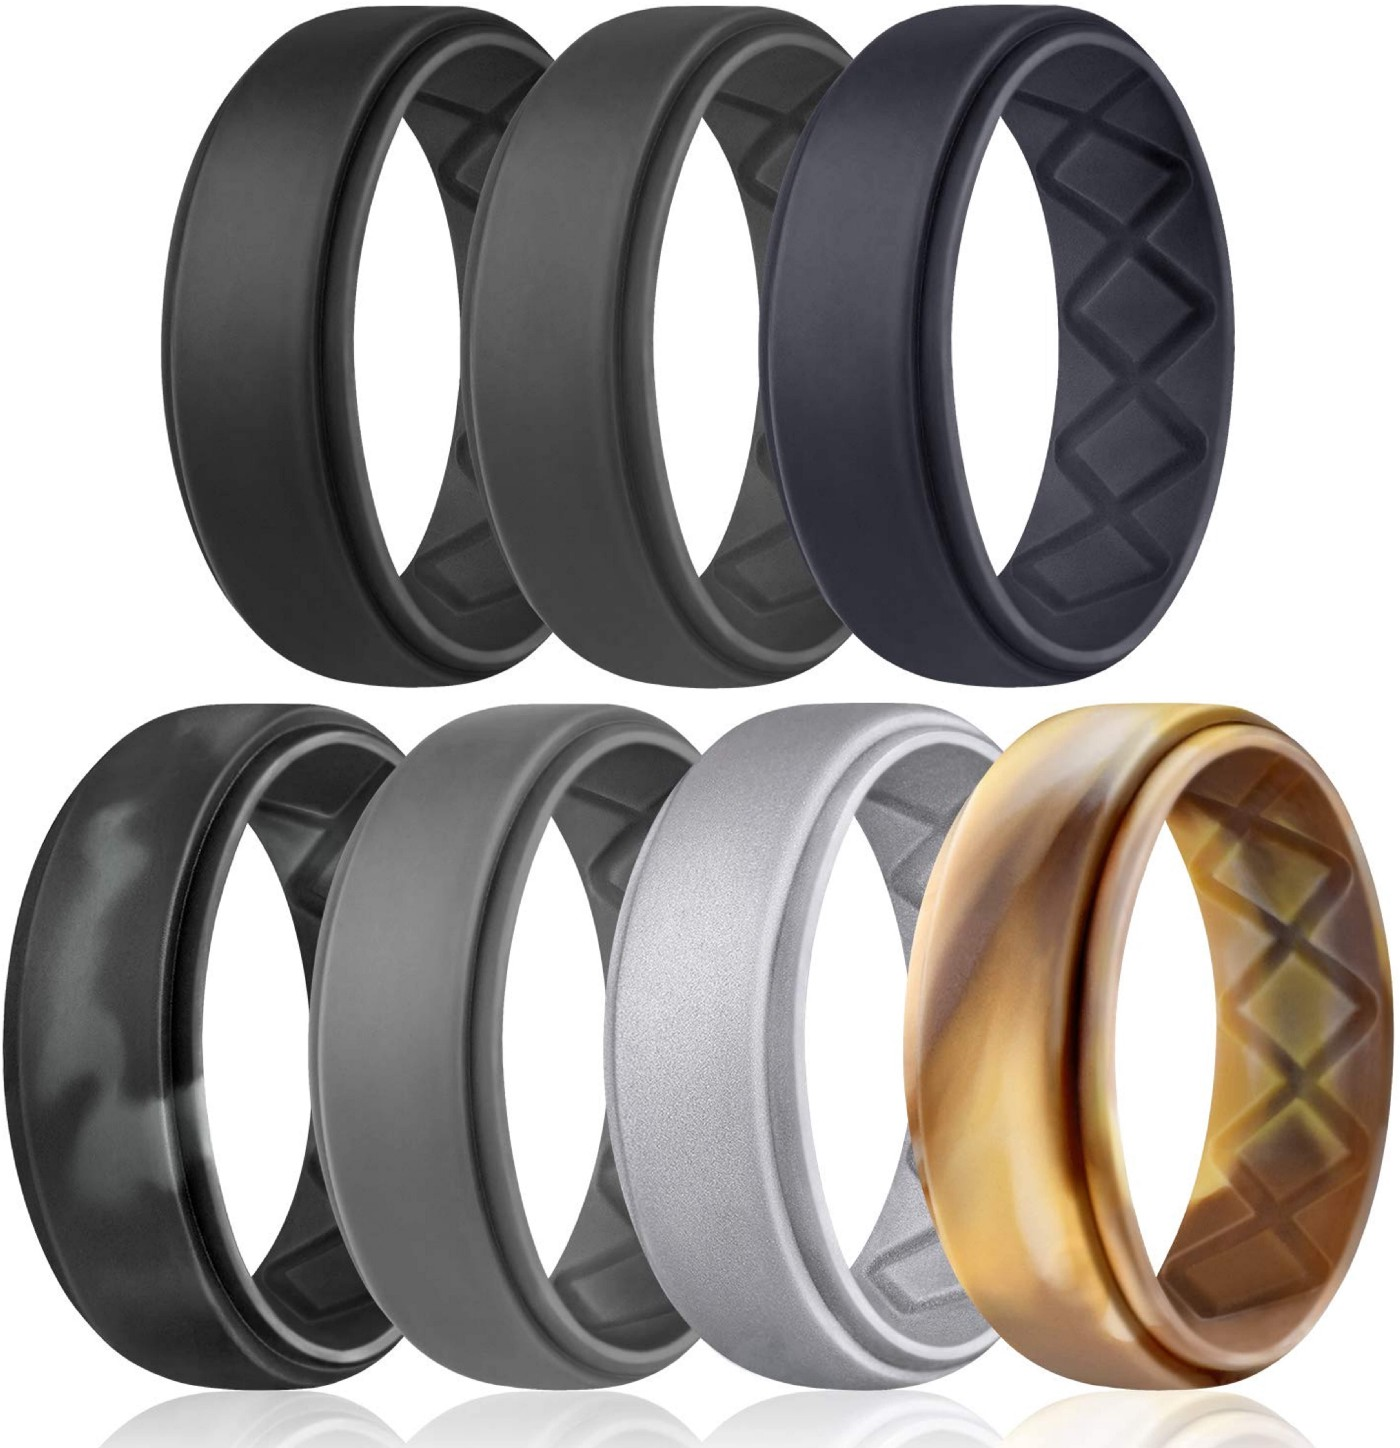 Silicone Wedding Ring for Men, Breathable Mens' Rubber Wedding Bands, Size 8 9 10 11 12 13, for Crossfit Workout